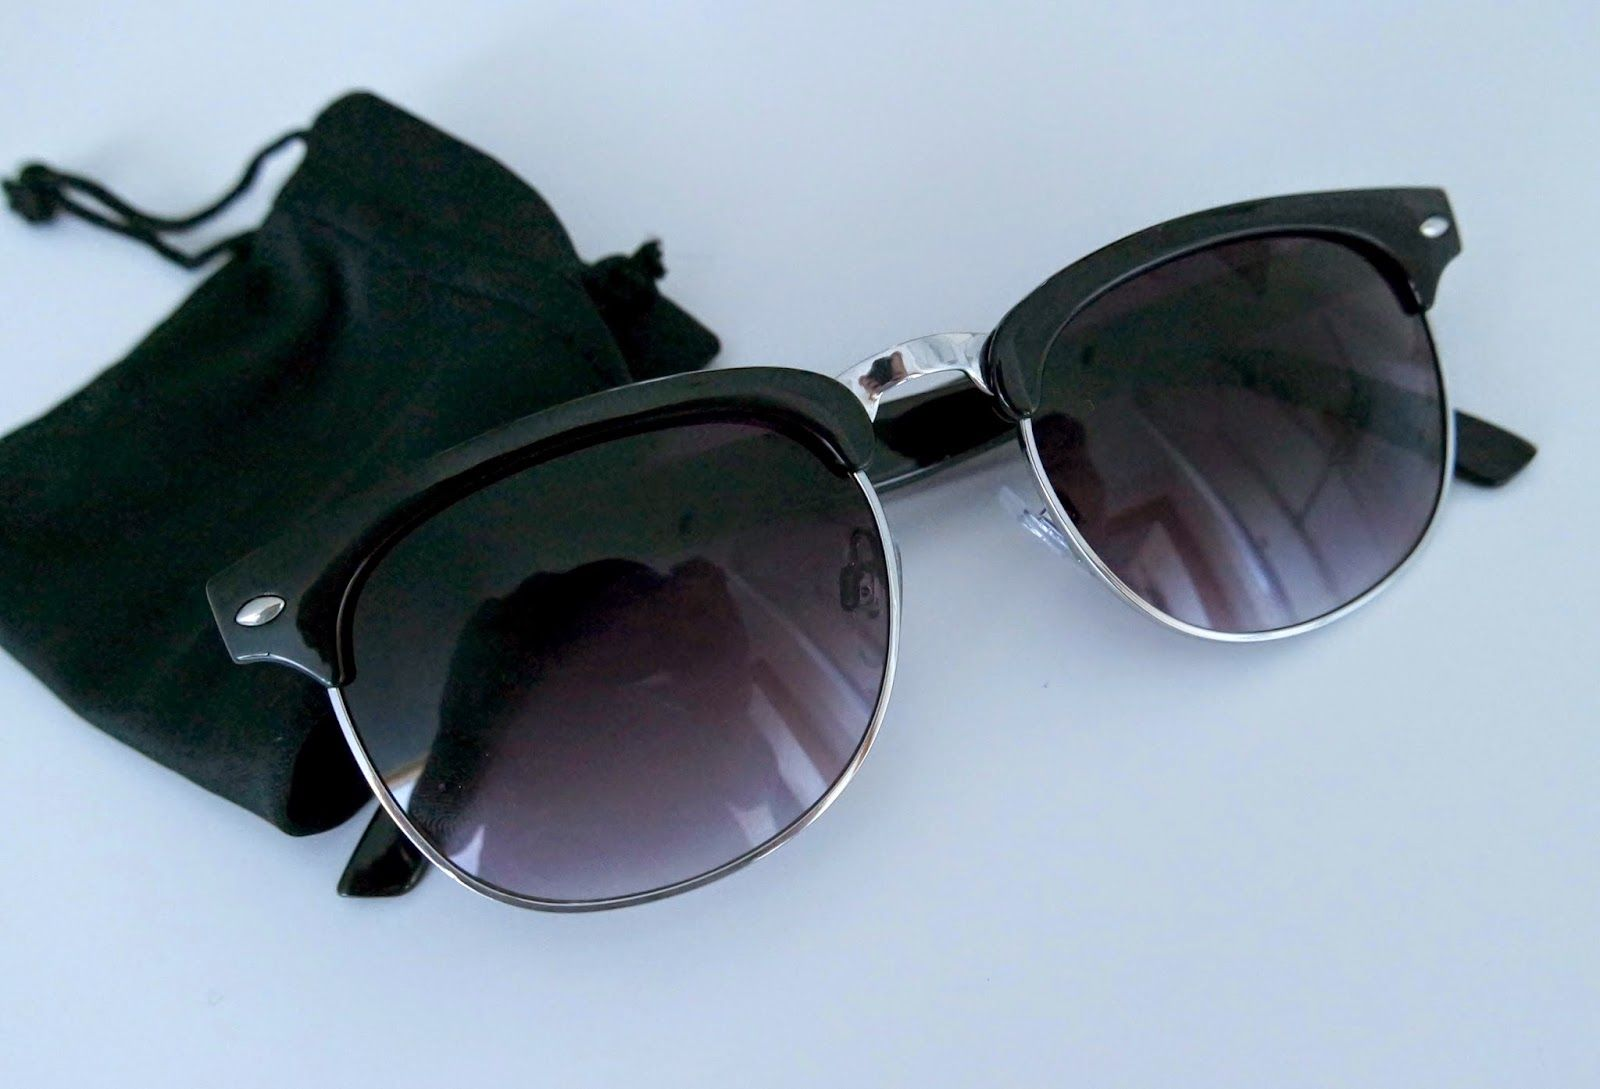 647b2cafd30 Sunglasses from Primark for £2 find out more here http   emandhanxo.